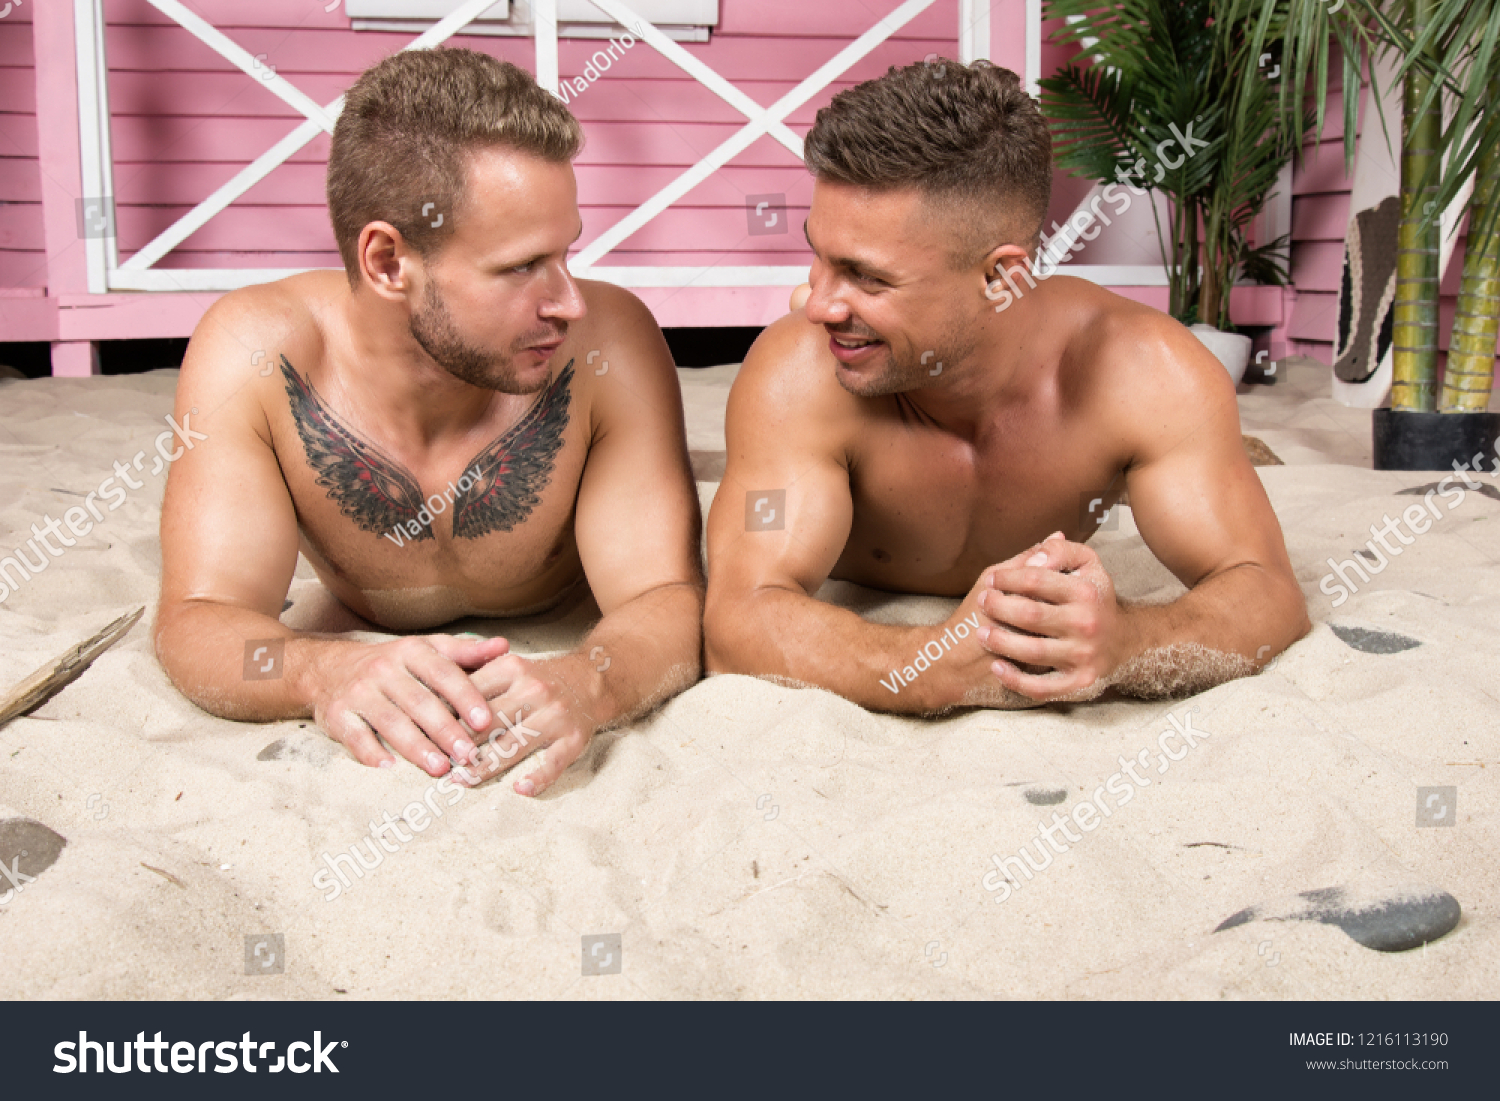 Two guys in vacation